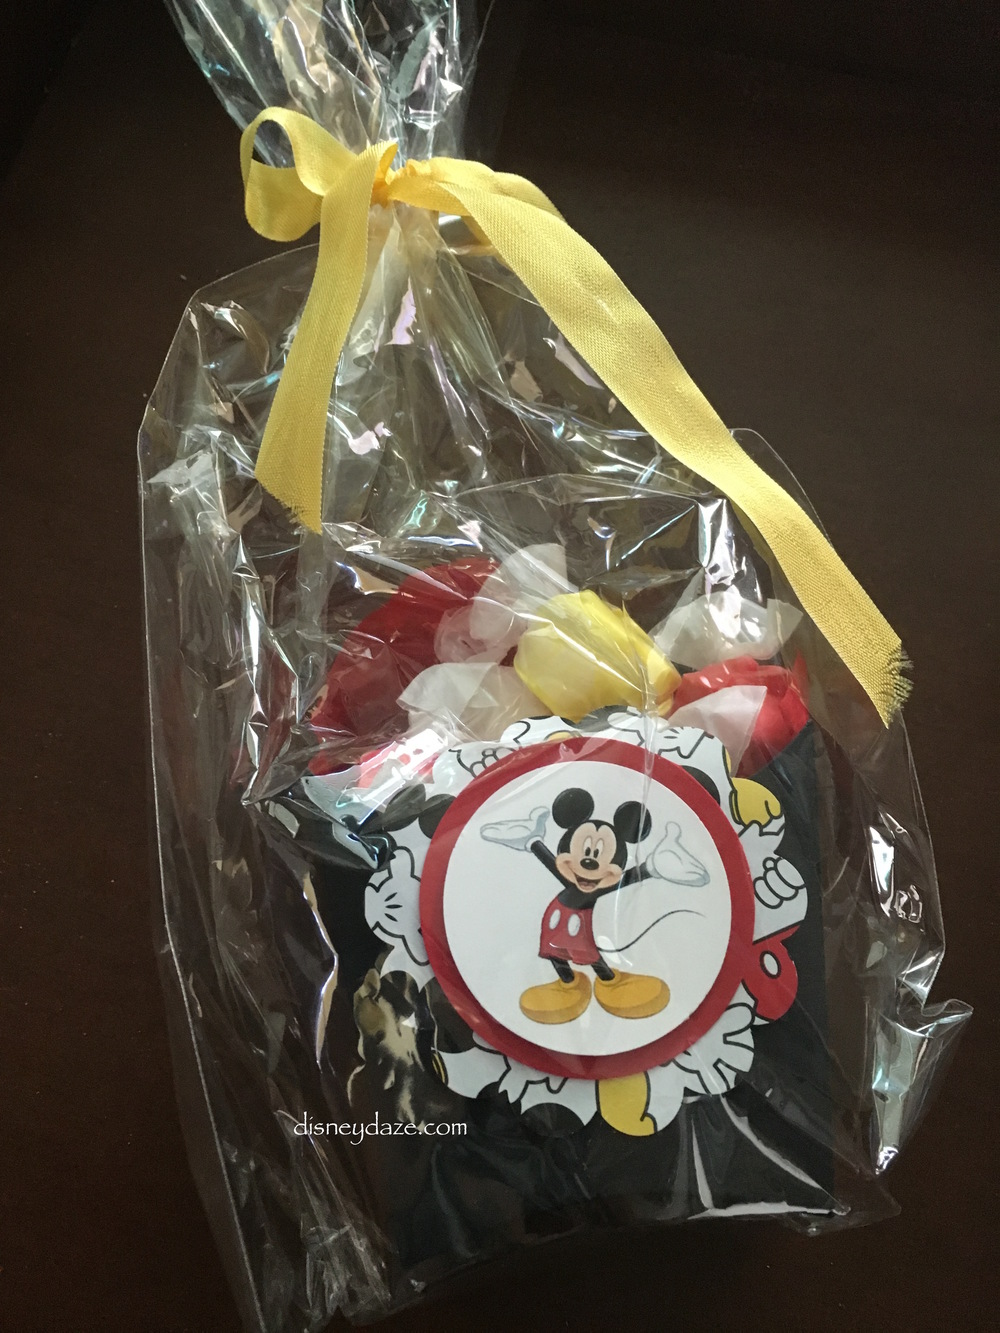 Disney craft 7.jpg